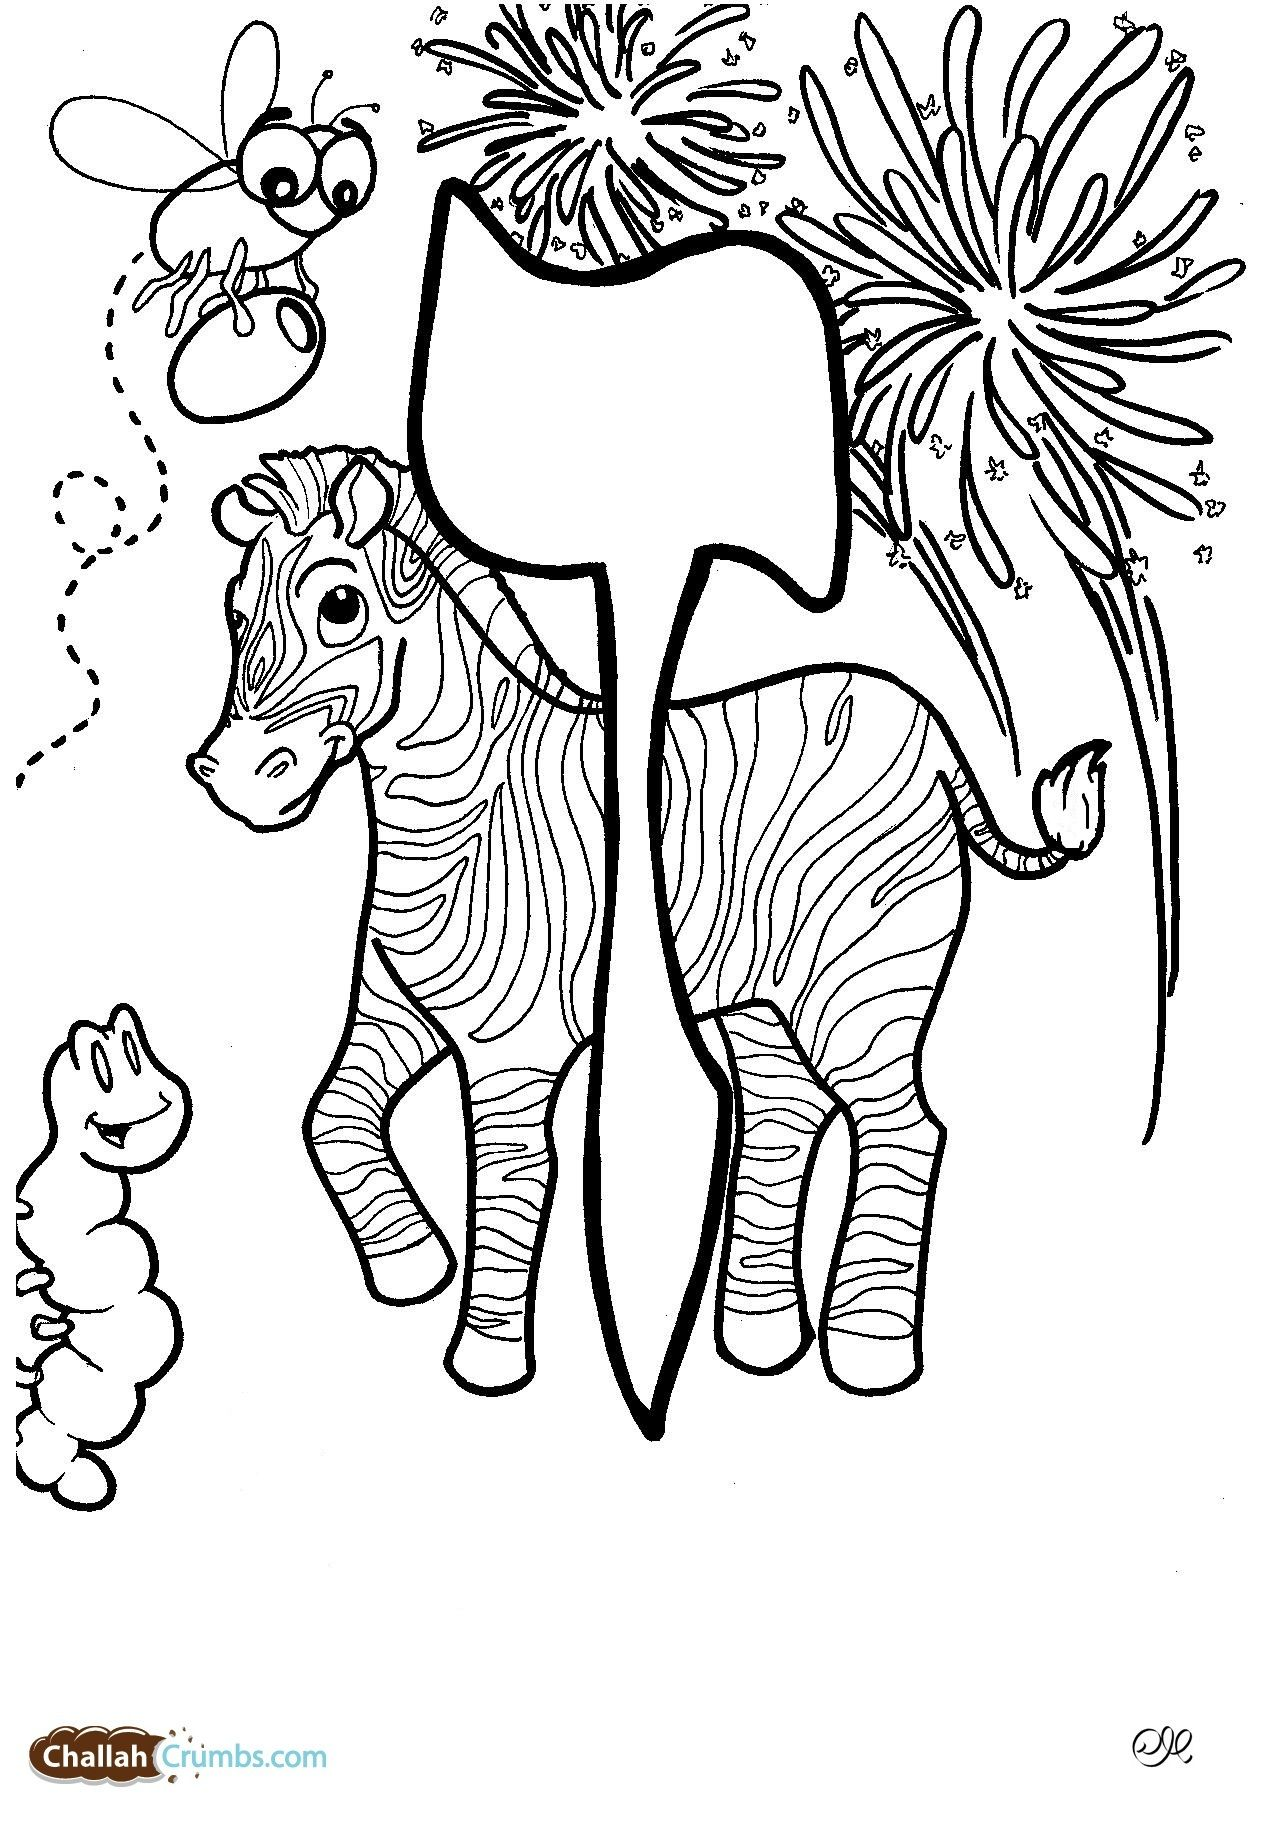 Coloring Pages Alef Bet Coloring Pages 1000 images about alef bet print on pinterest free printable coloring pages student centered resources and pictures to print